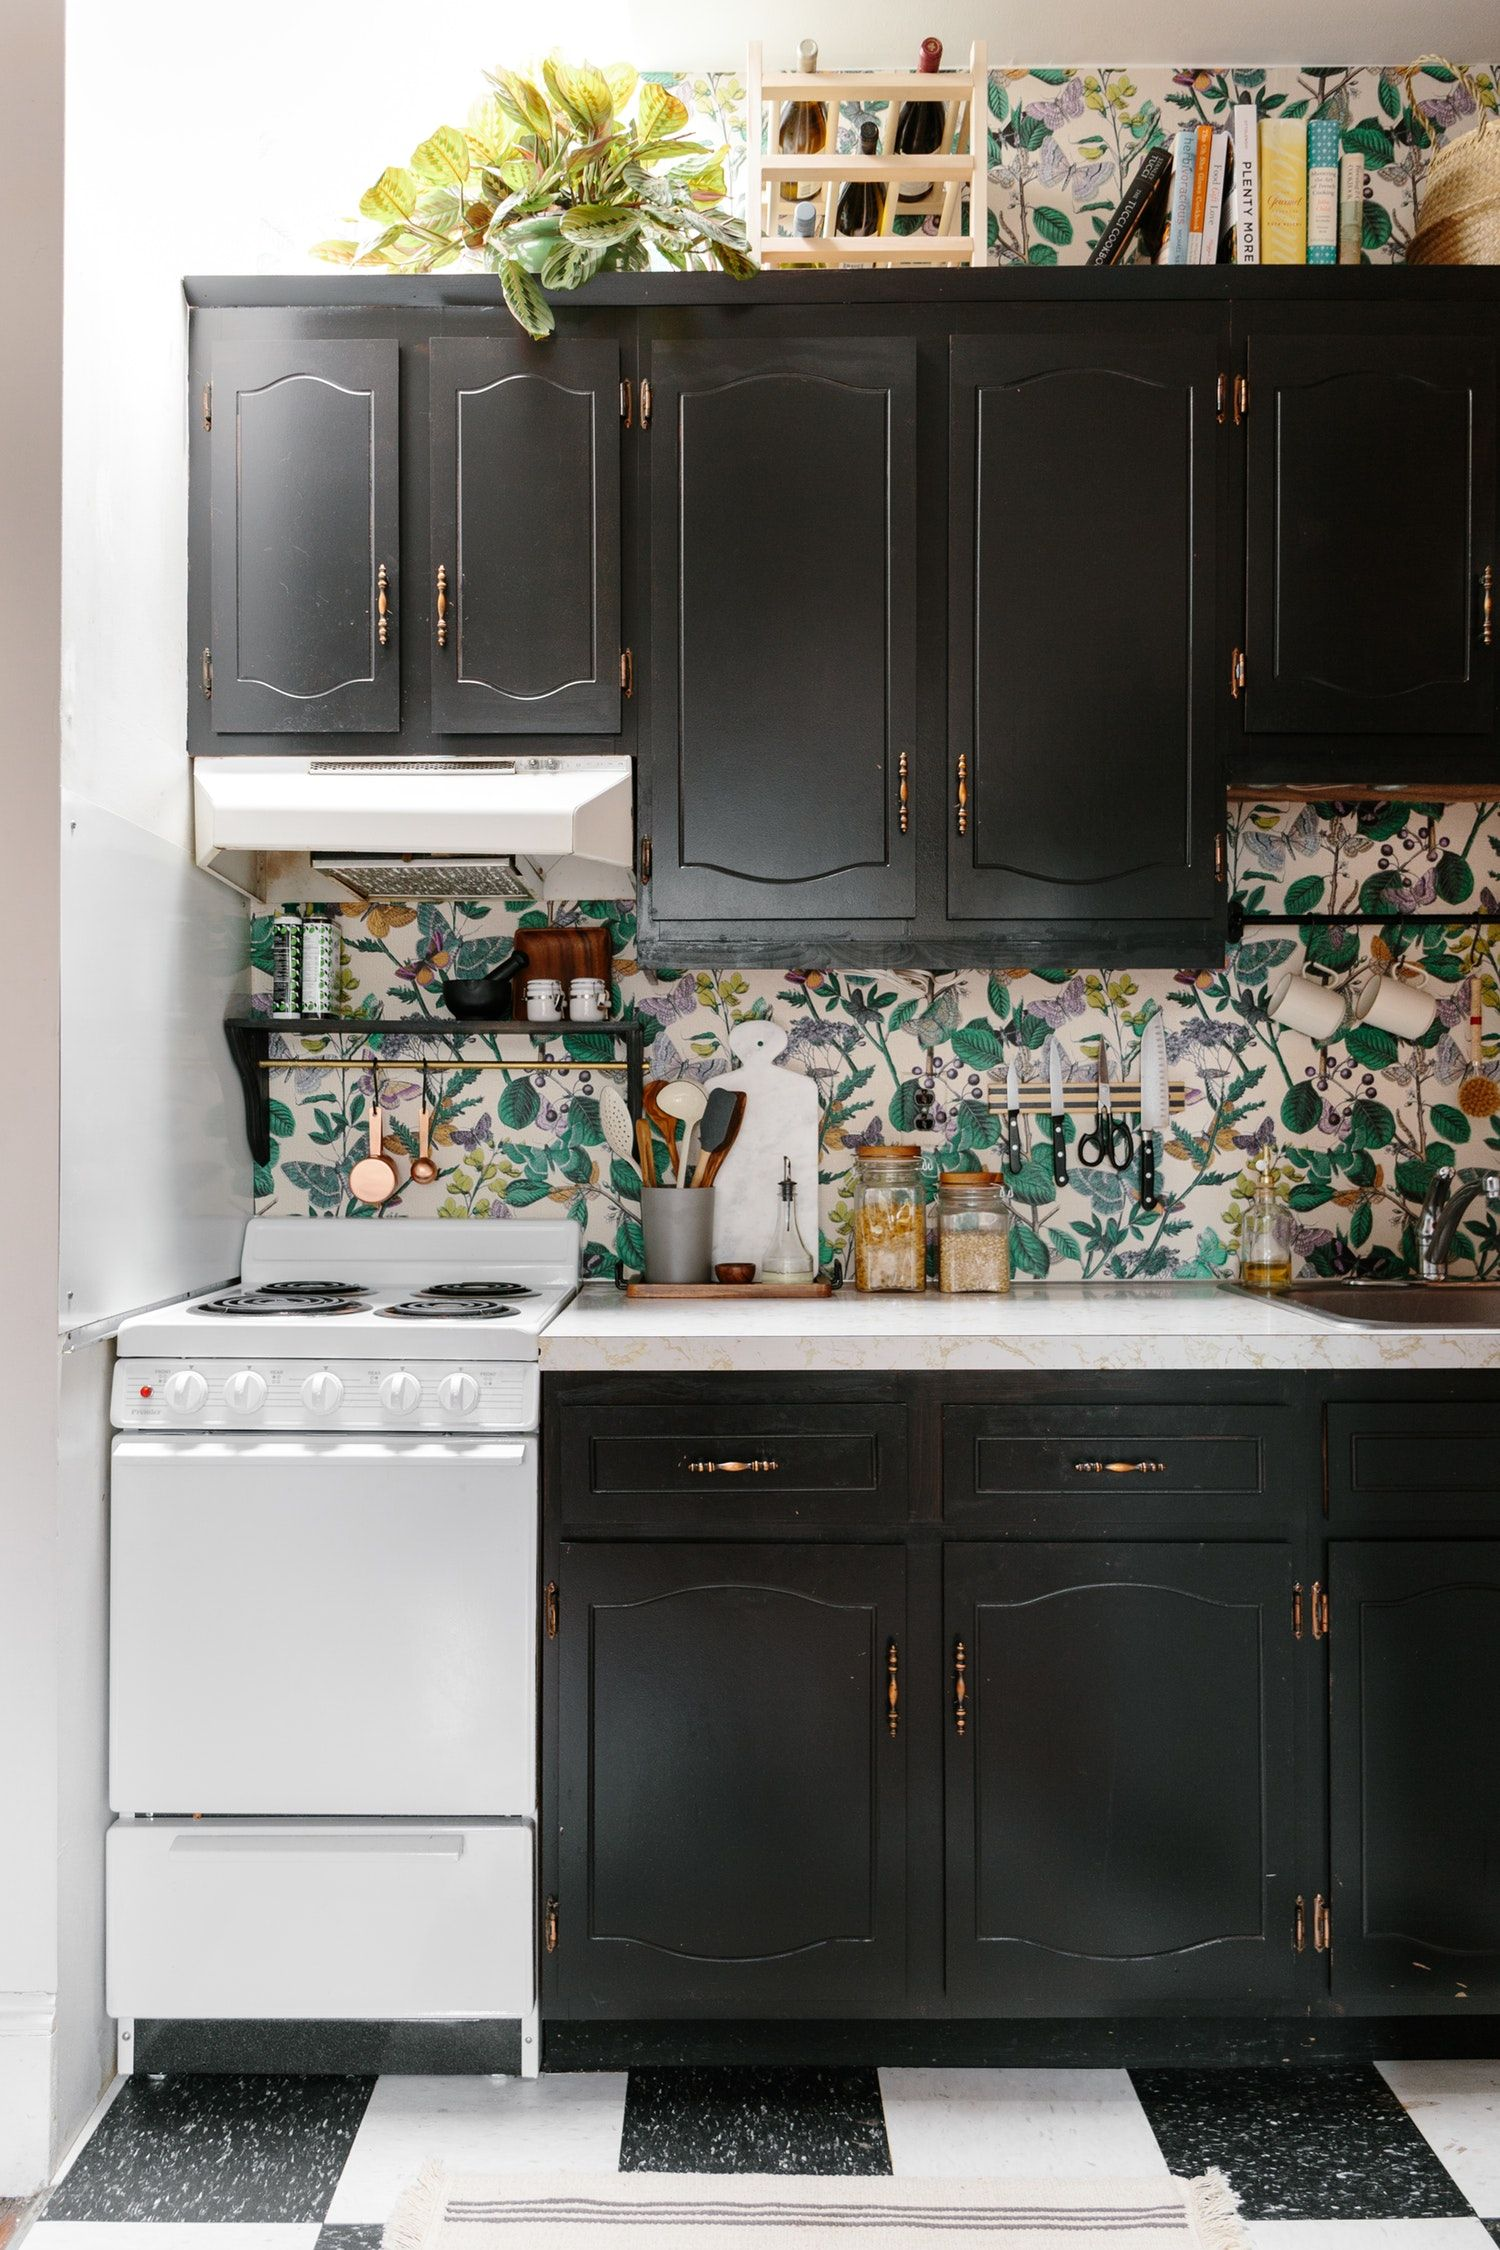 Pin On Home Store Organize Kitchen Dining Room